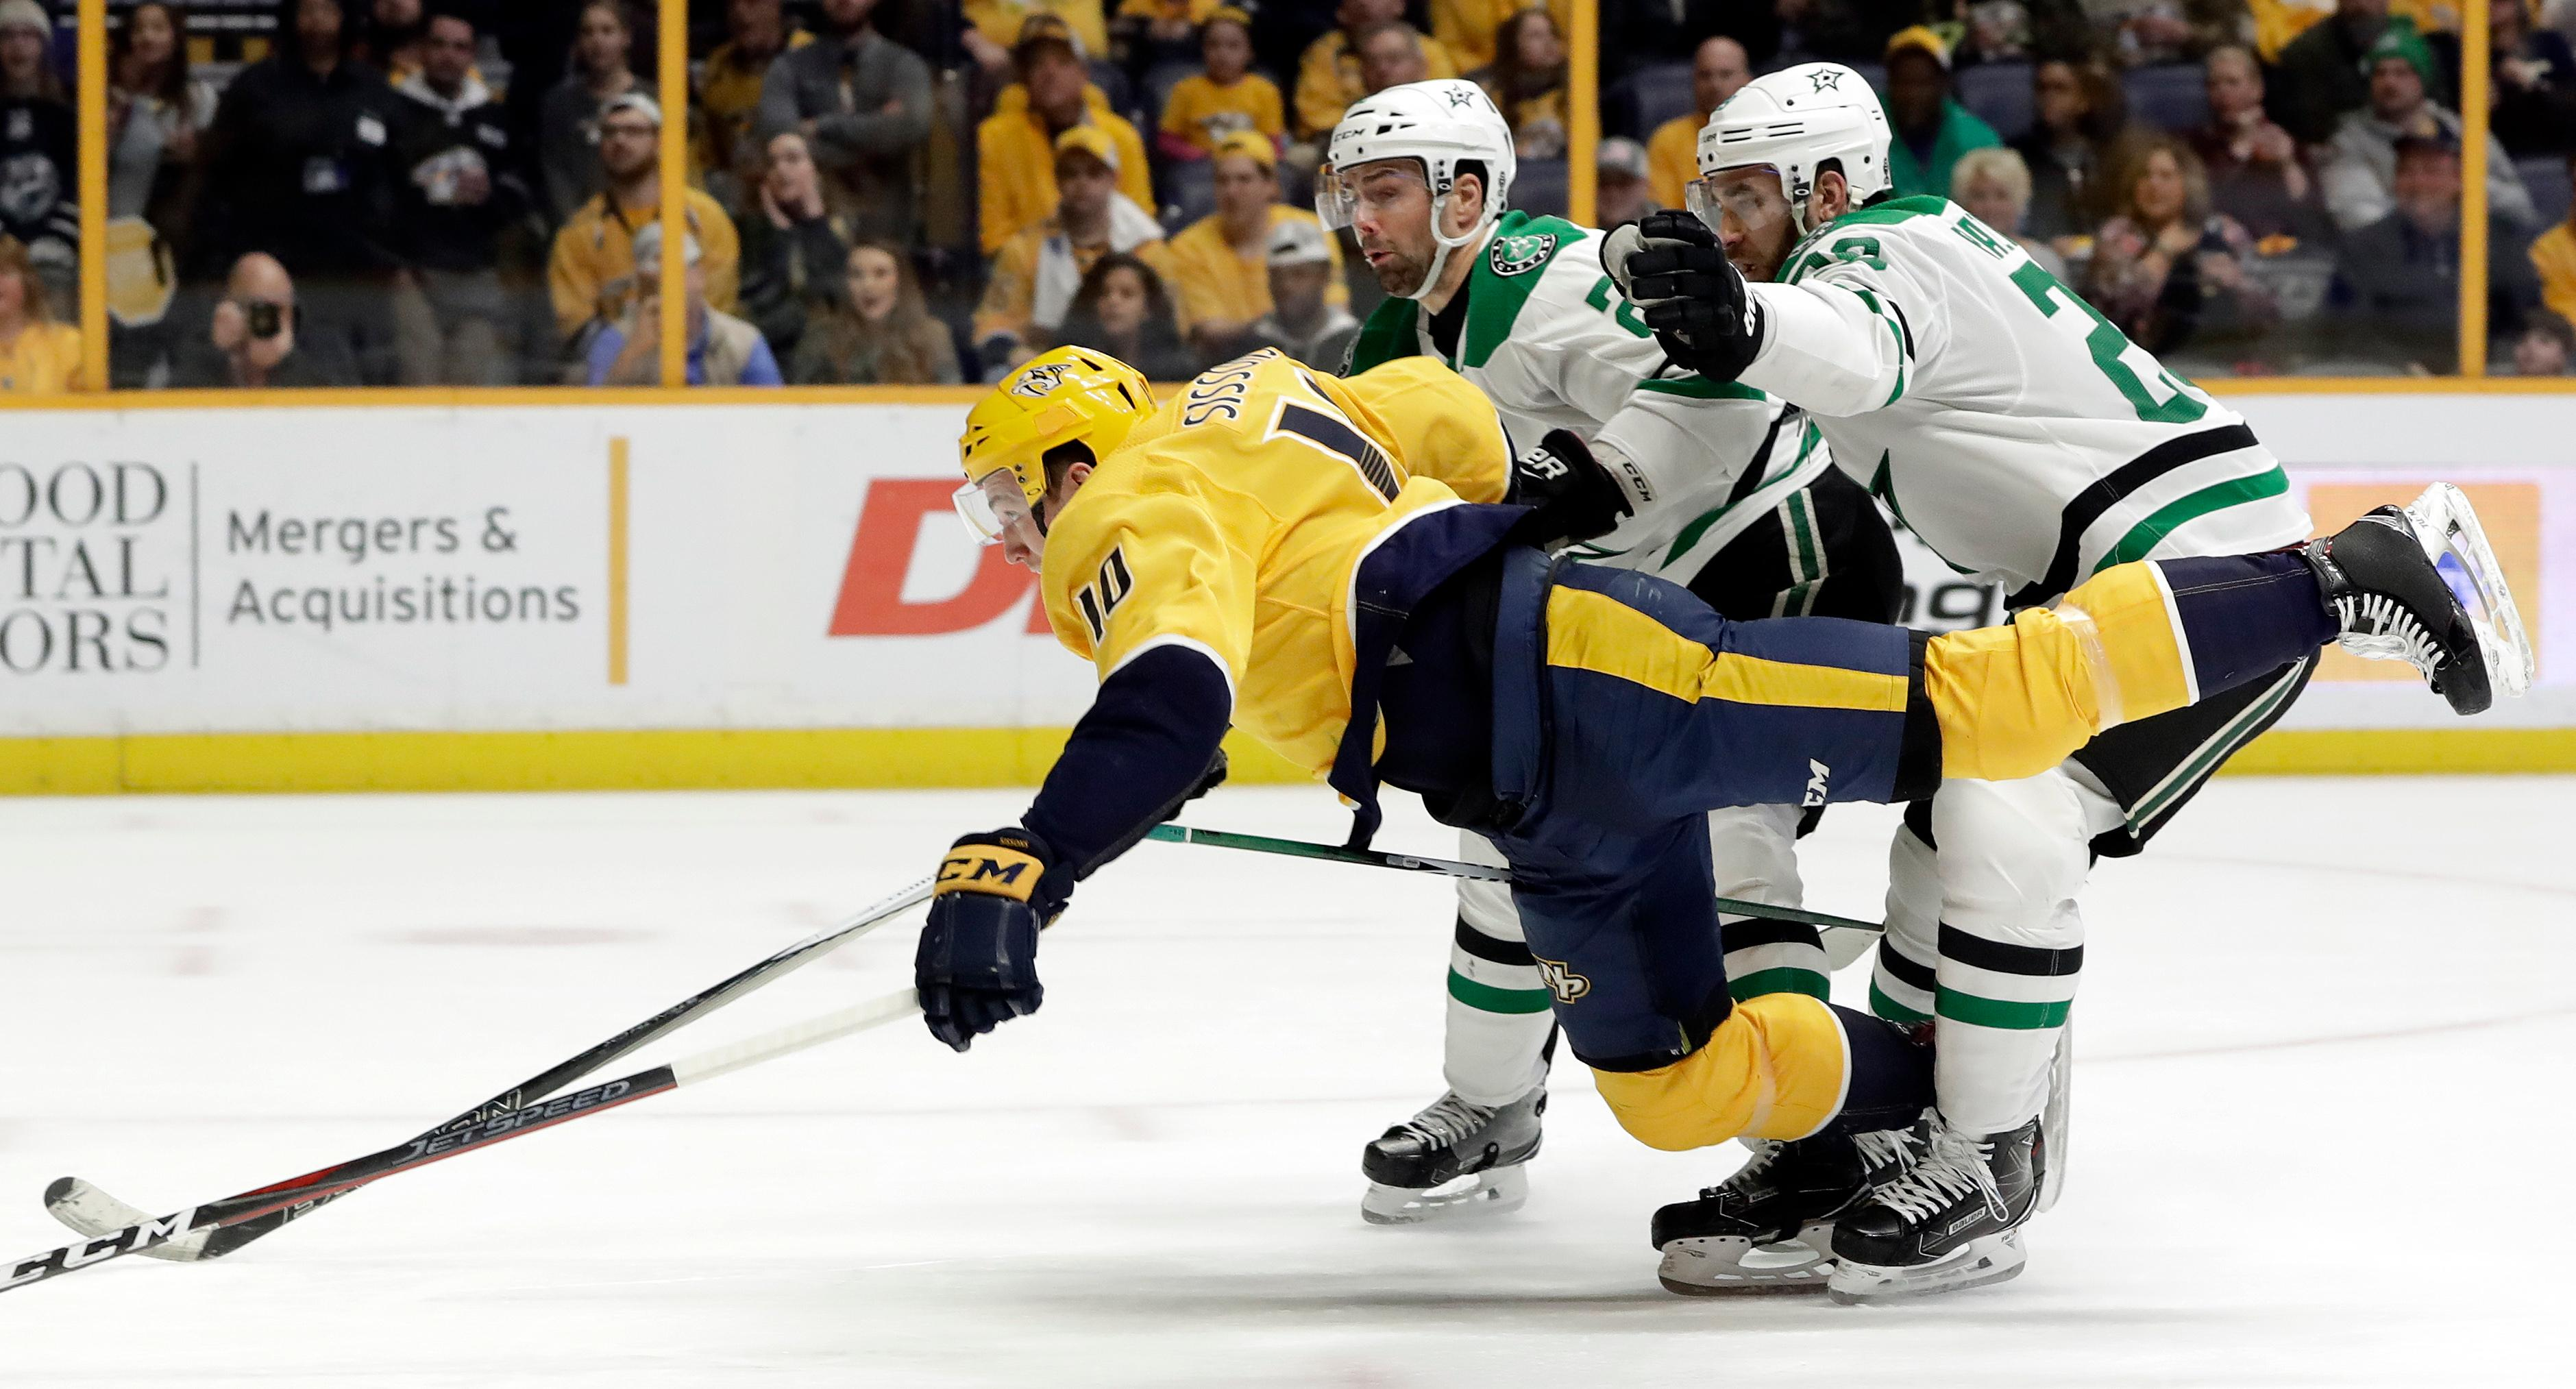 Dallas Stars defenseman Greg Pateryn, right takes down Nashville Predators center Colton Sissons (10) in the second period of an NHL hockey game Tuesday, March 6, 2018, in Nashville, Tenn. Pattern was penalized for holding. (AP Photo/Mark Humphrey)